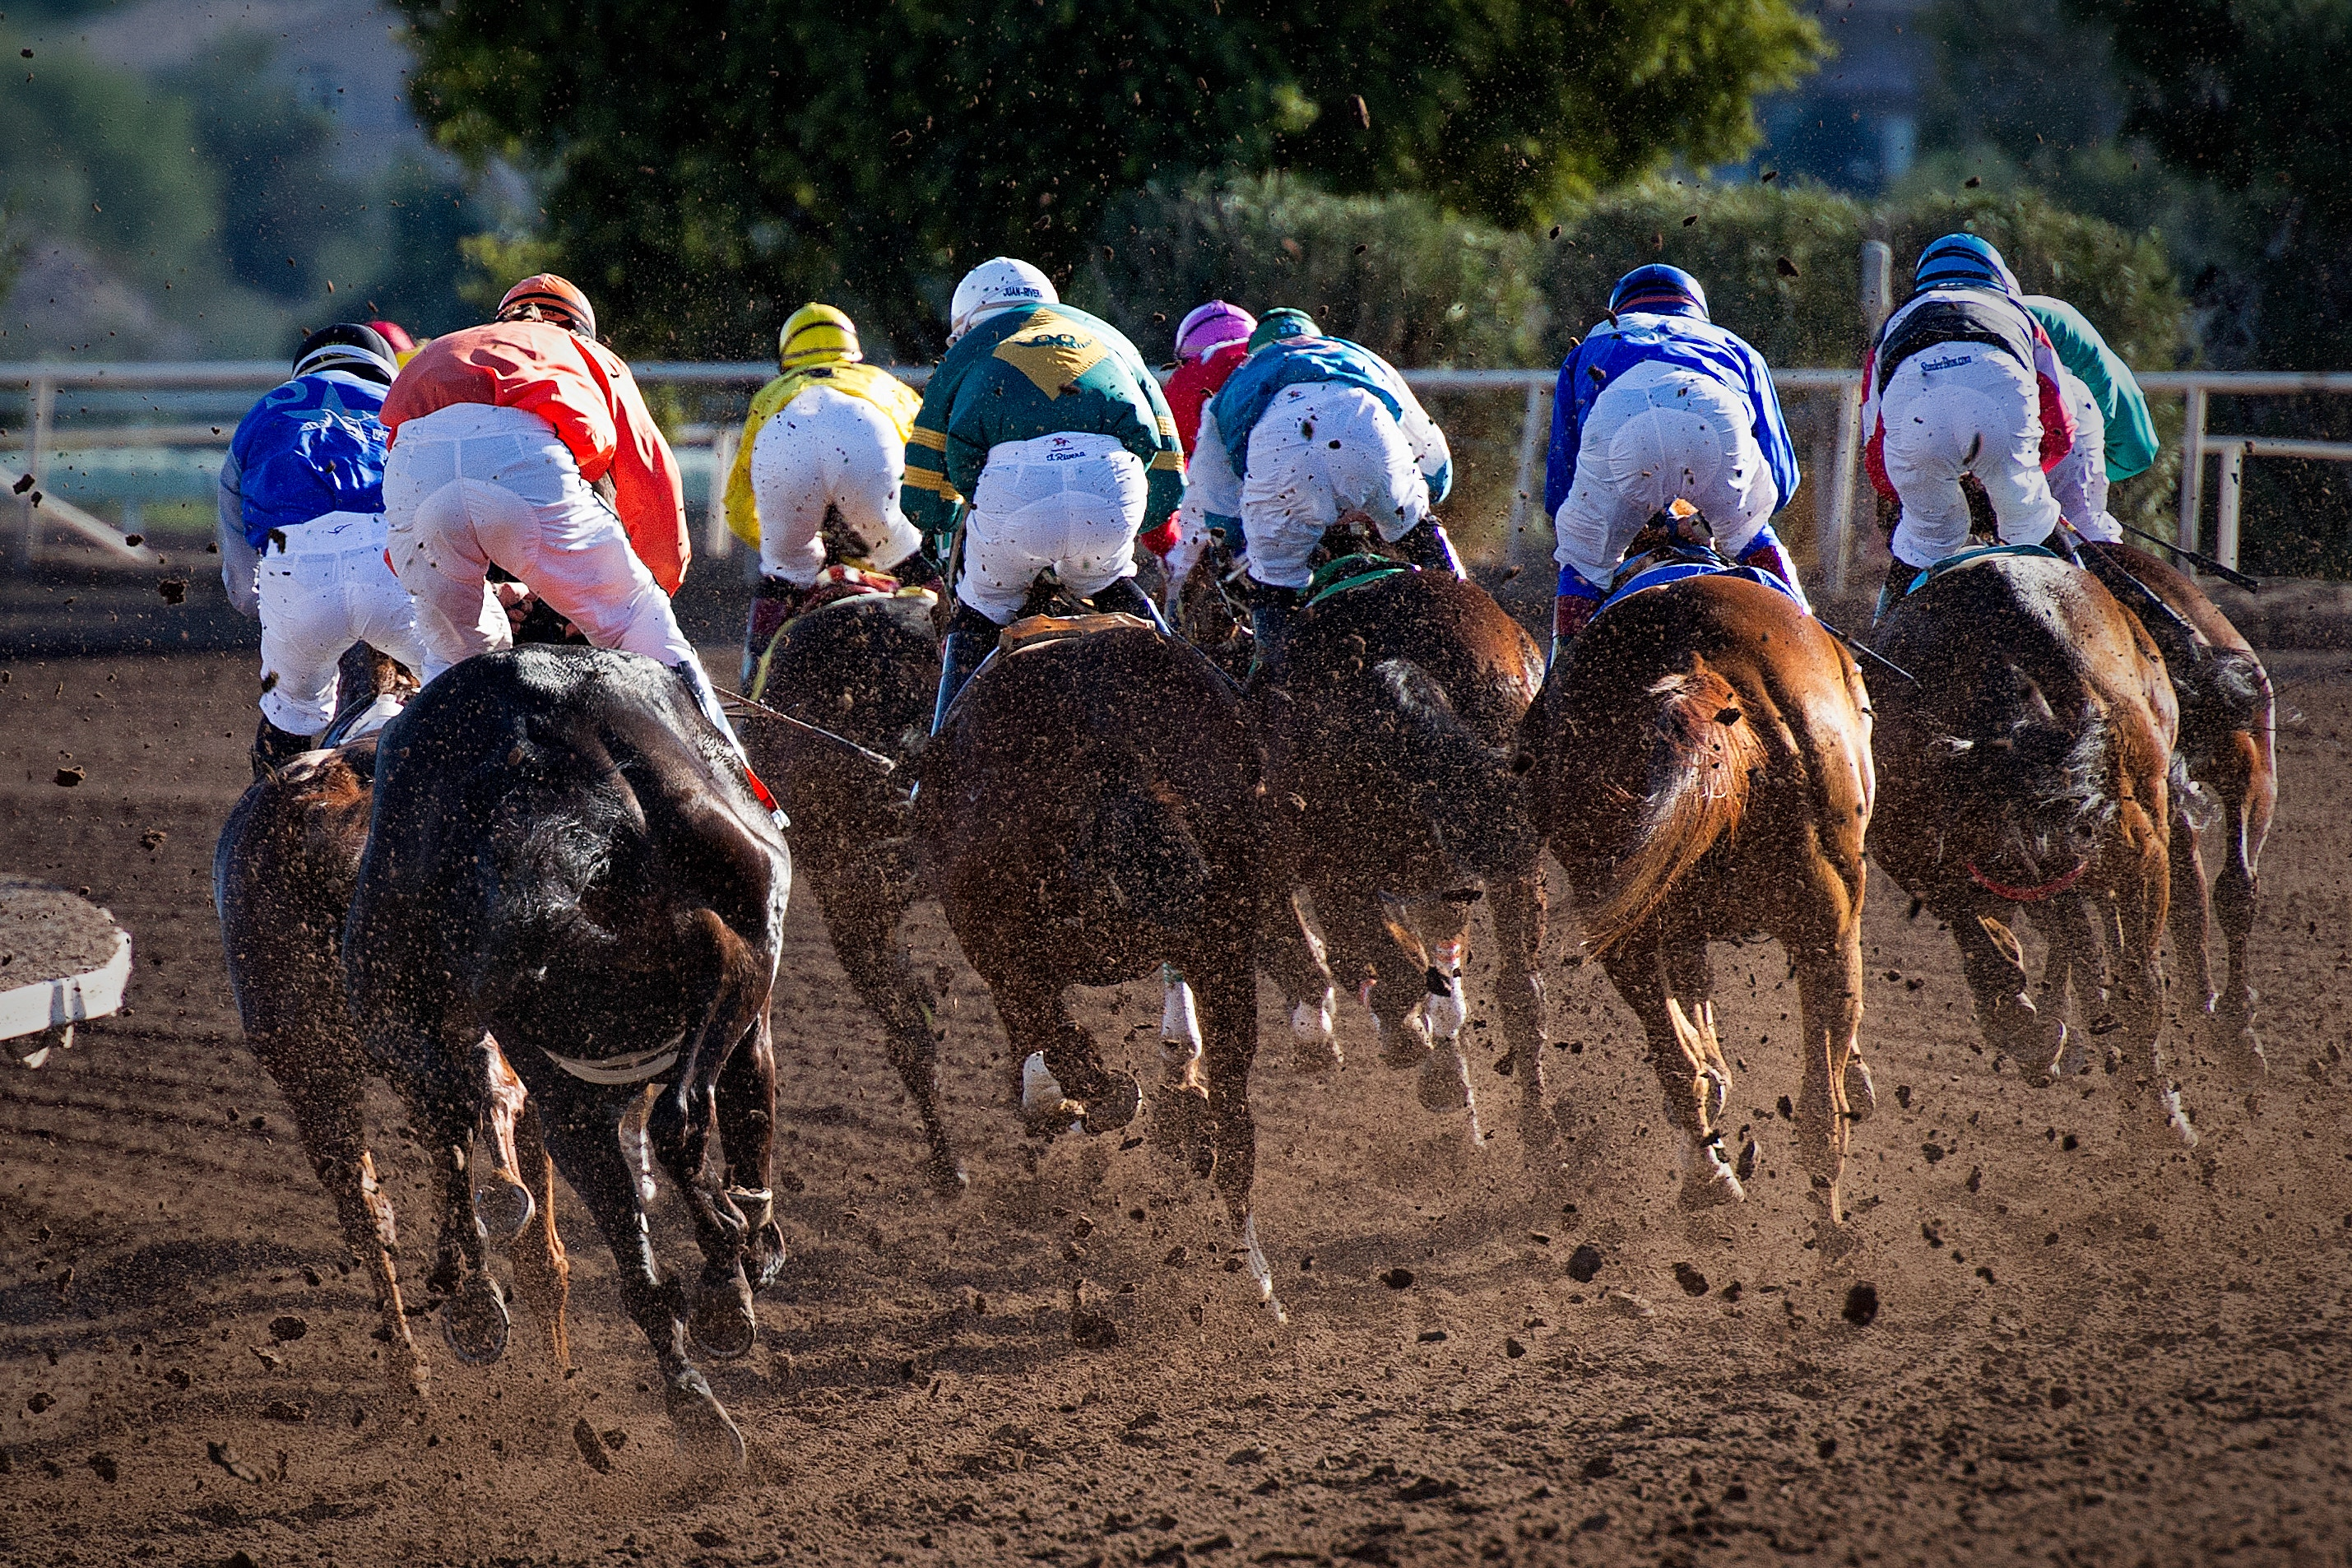 A research team in Waterford Institute of Technology (WIT) in conjunction with the University of Limerick are currently investigating the mental health, bone health and physiology of the jockey in three different projects. Phot: Photo by Gene Devine on Unsplash